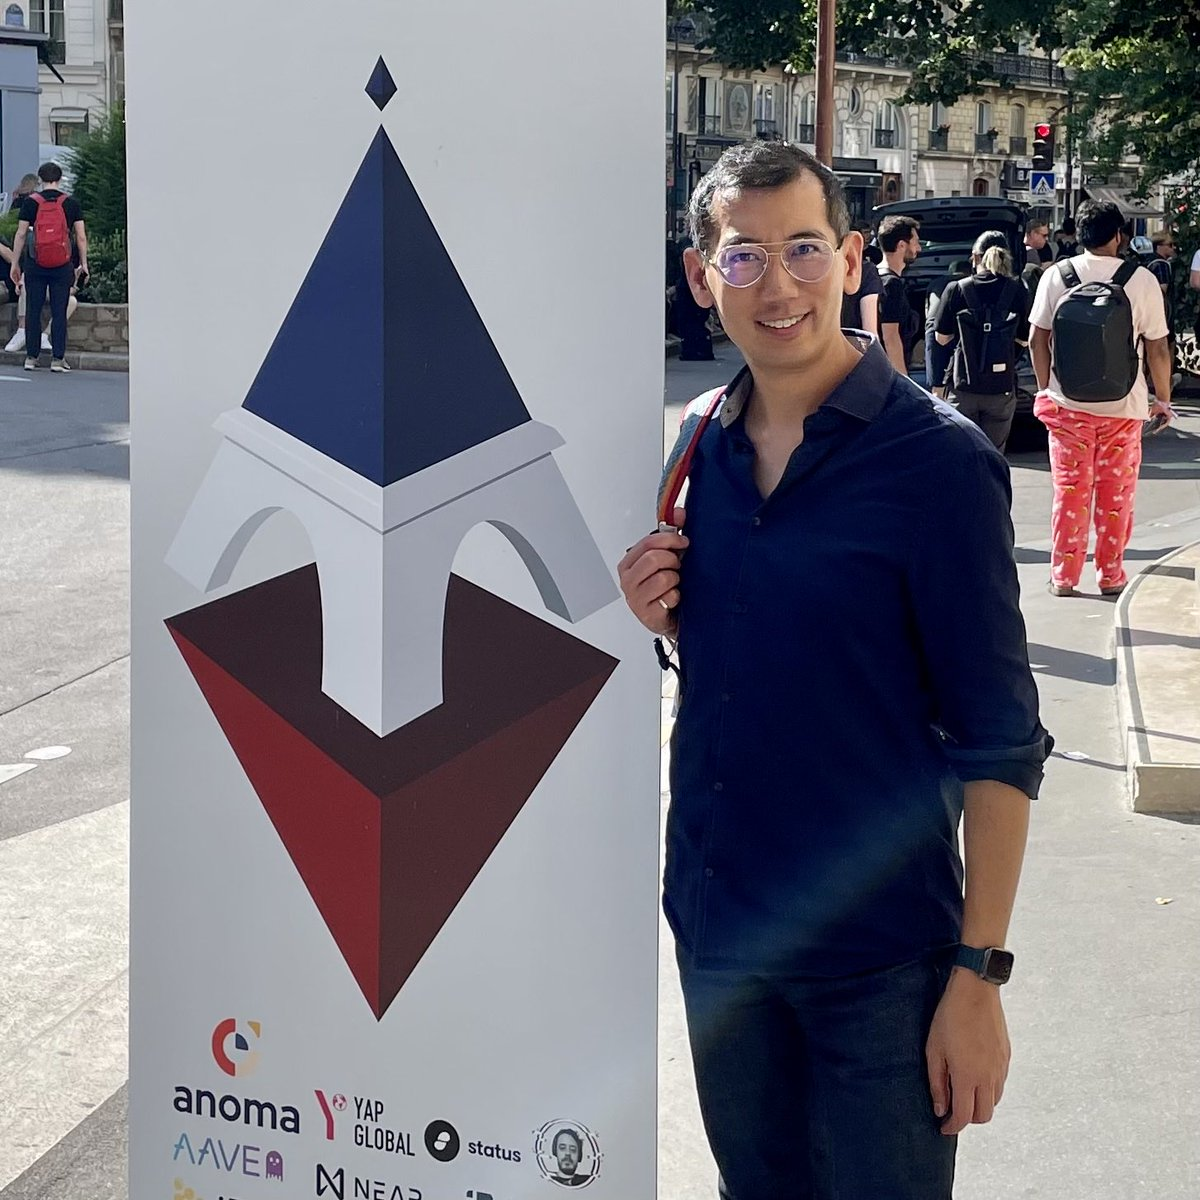 To say #ethccweek is awesome would be an understatement. Making connections, building out our ecosystem, and having a blast here in Paris!  @EthCC #Ethereum #EthereumForAll https://t.co/EQdvyMH2sS